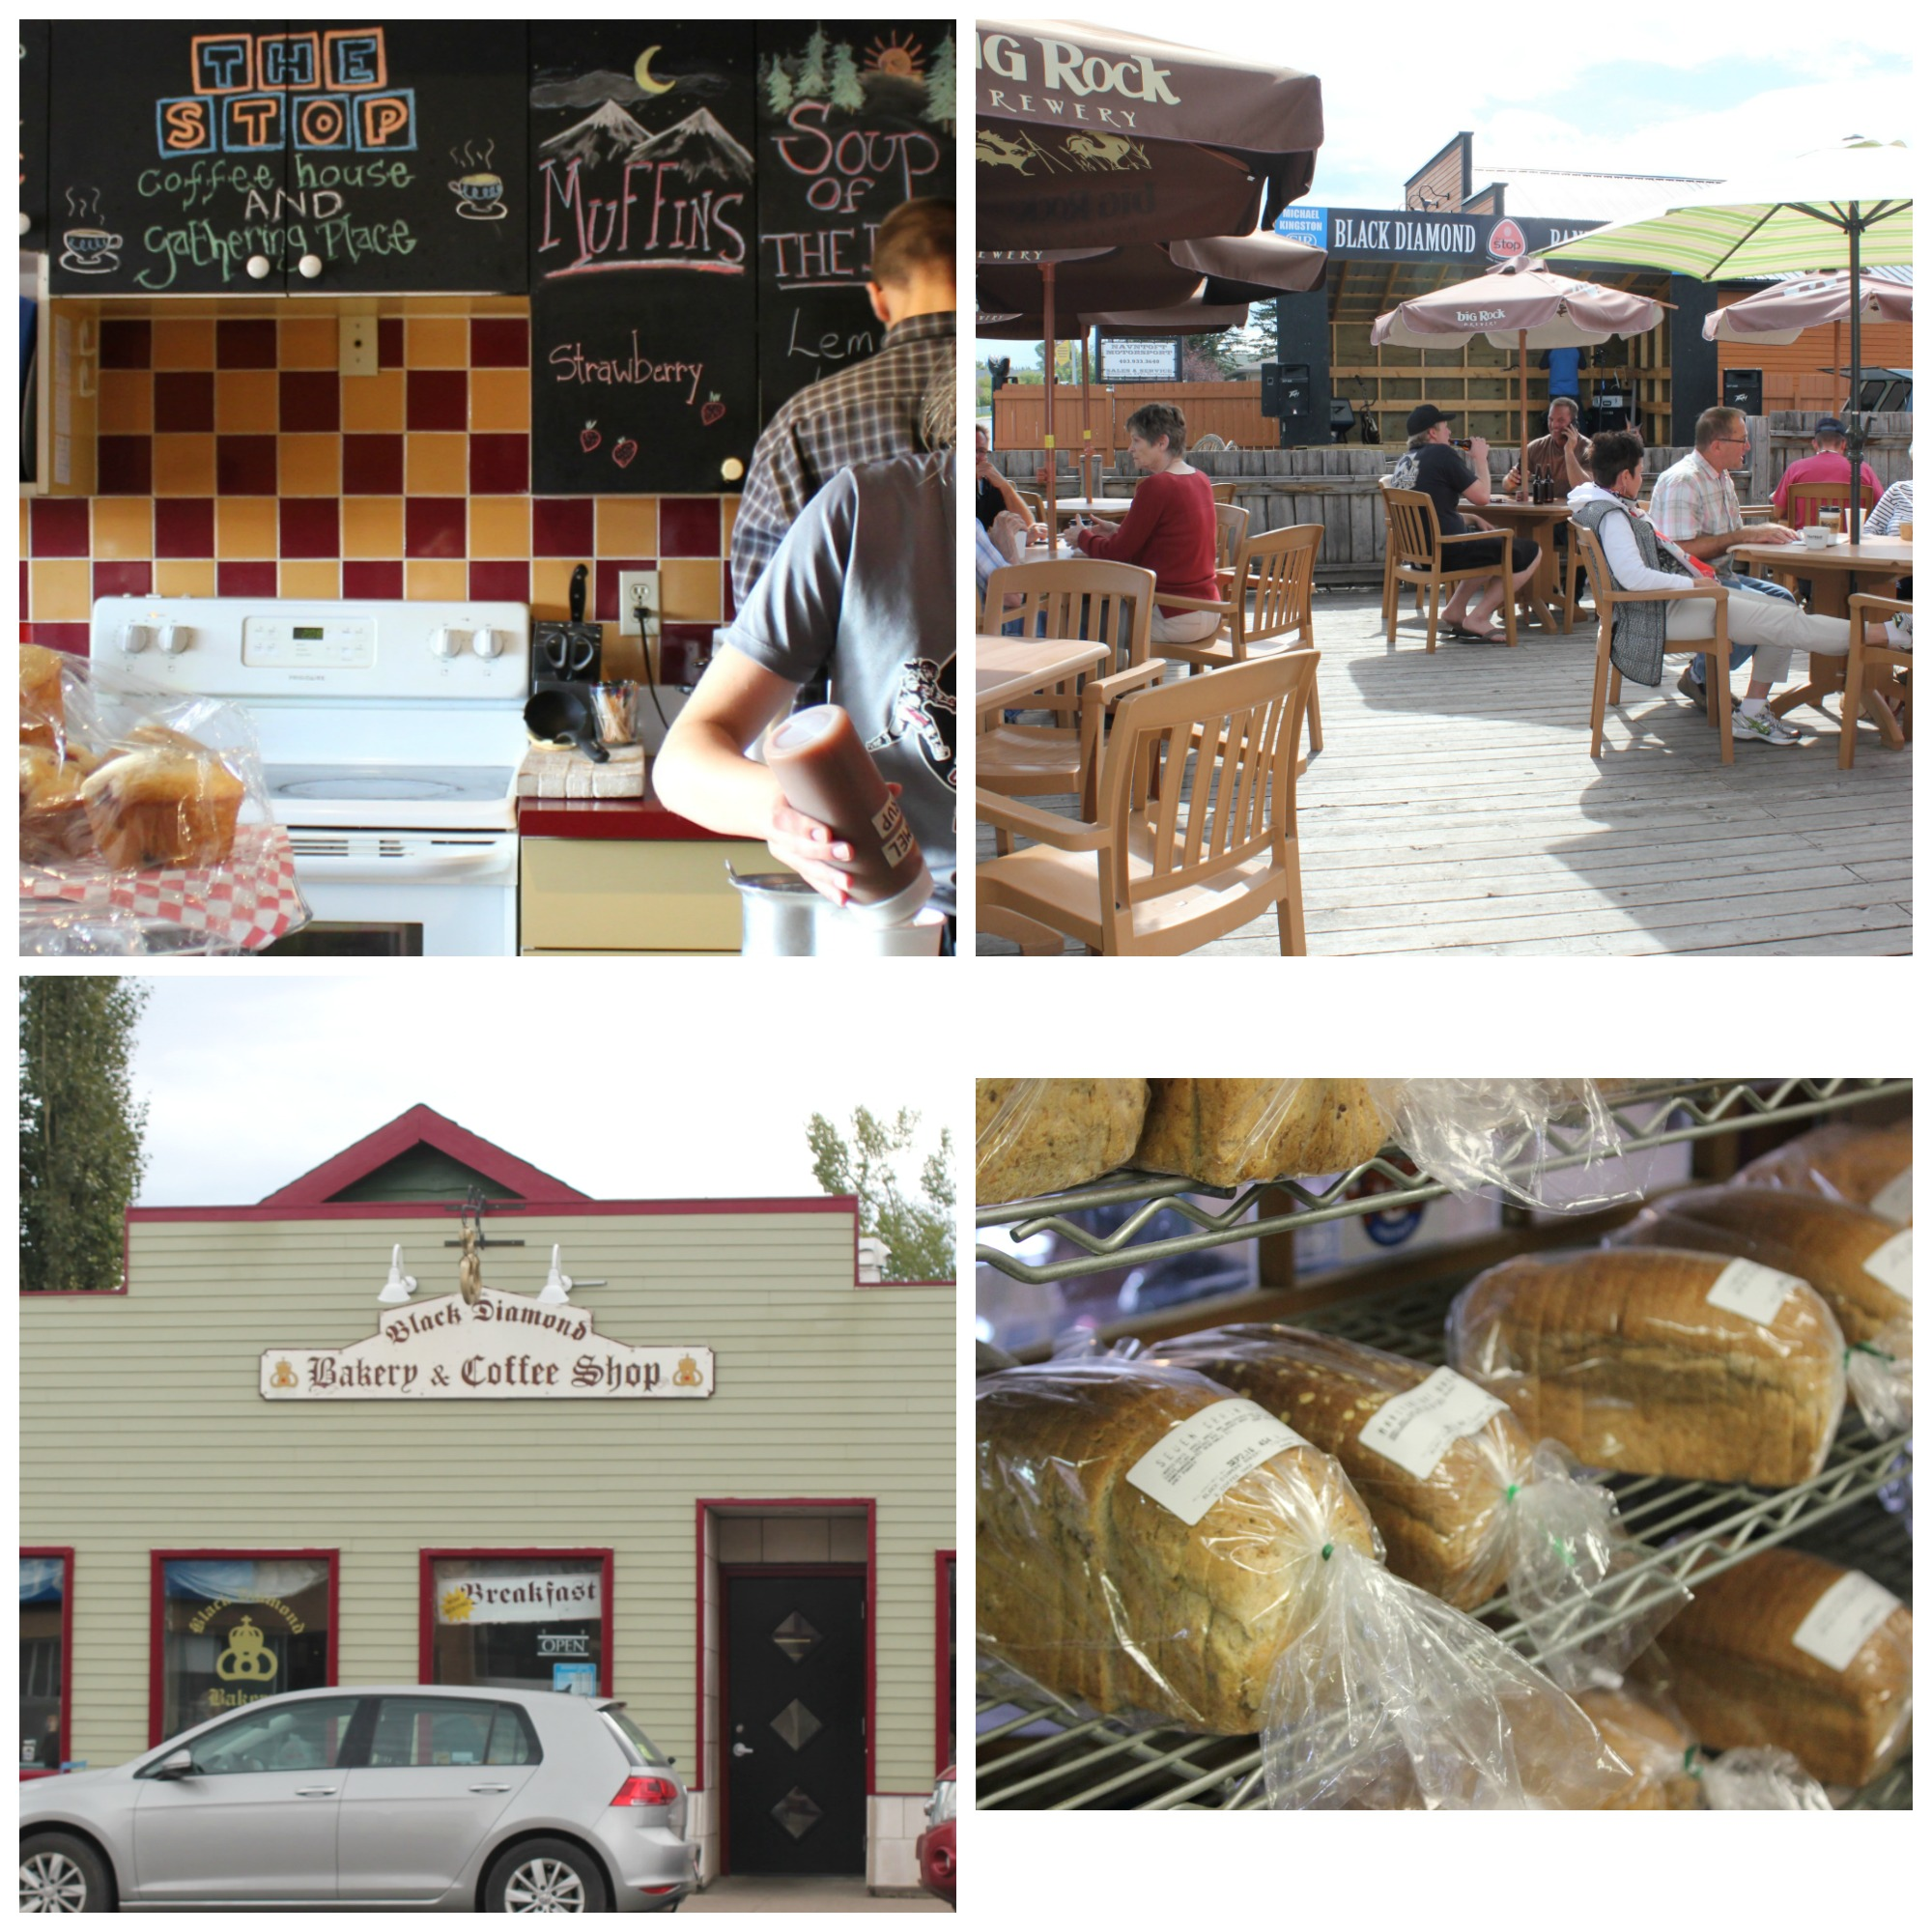 One Stop Coffee Shop and Black Diamond Bakery